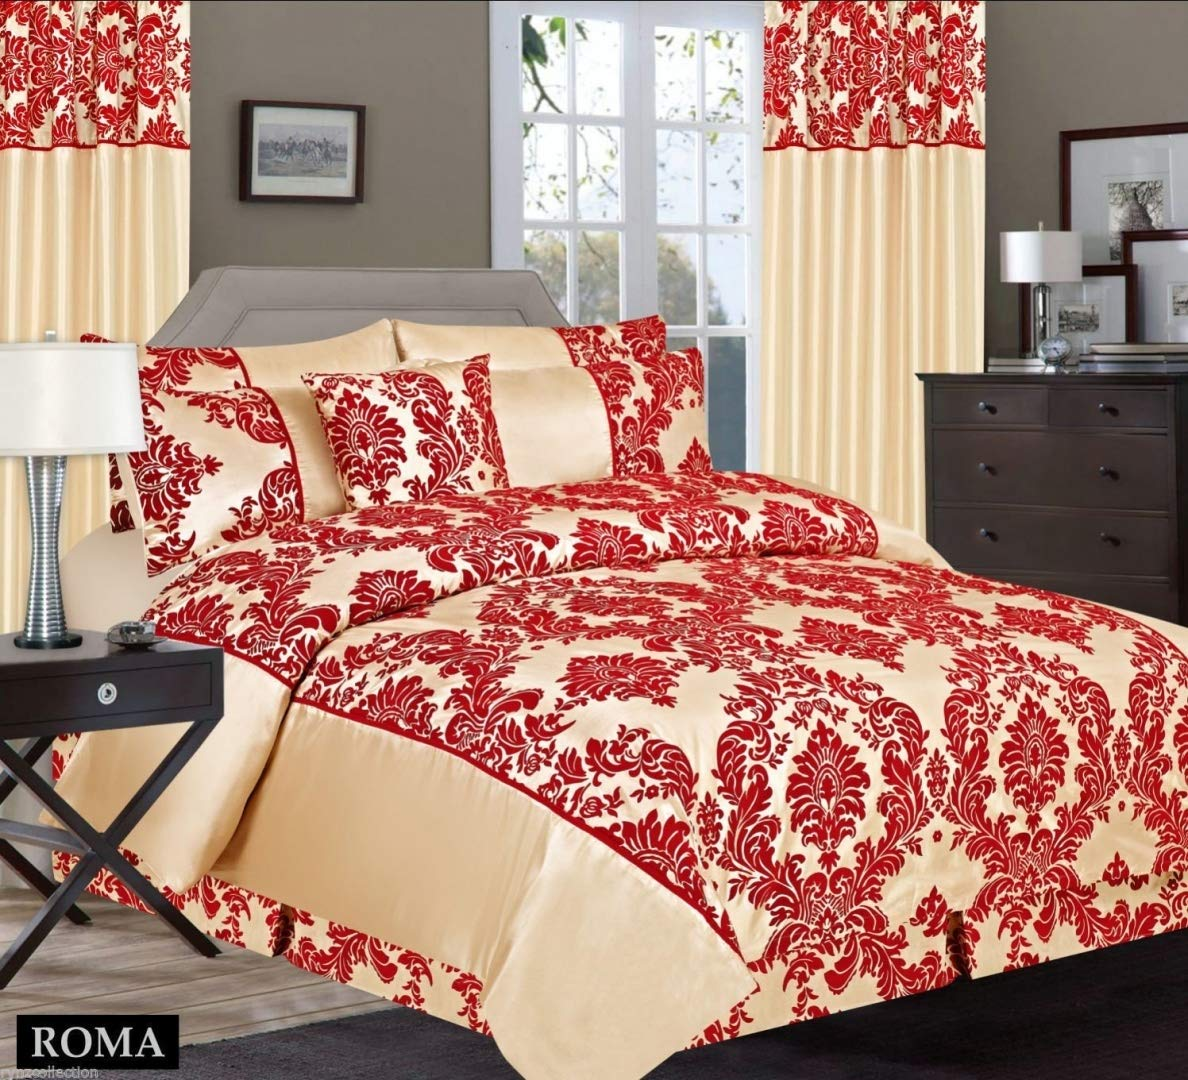 Antonio Damask 4 Pcs Flock Complete Bedding Set Duvet Cover Set Double & King by Lizzy® (Double, Red Black)